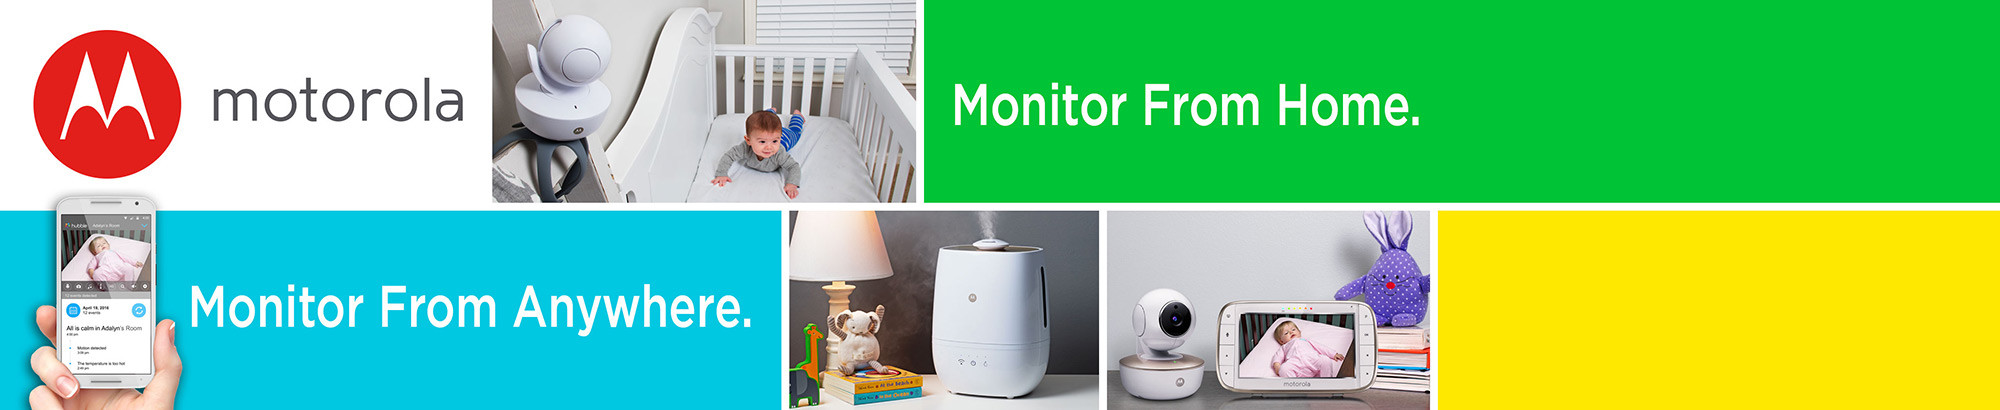 Motorola: Monitor from Home, Monitor from Anywhere